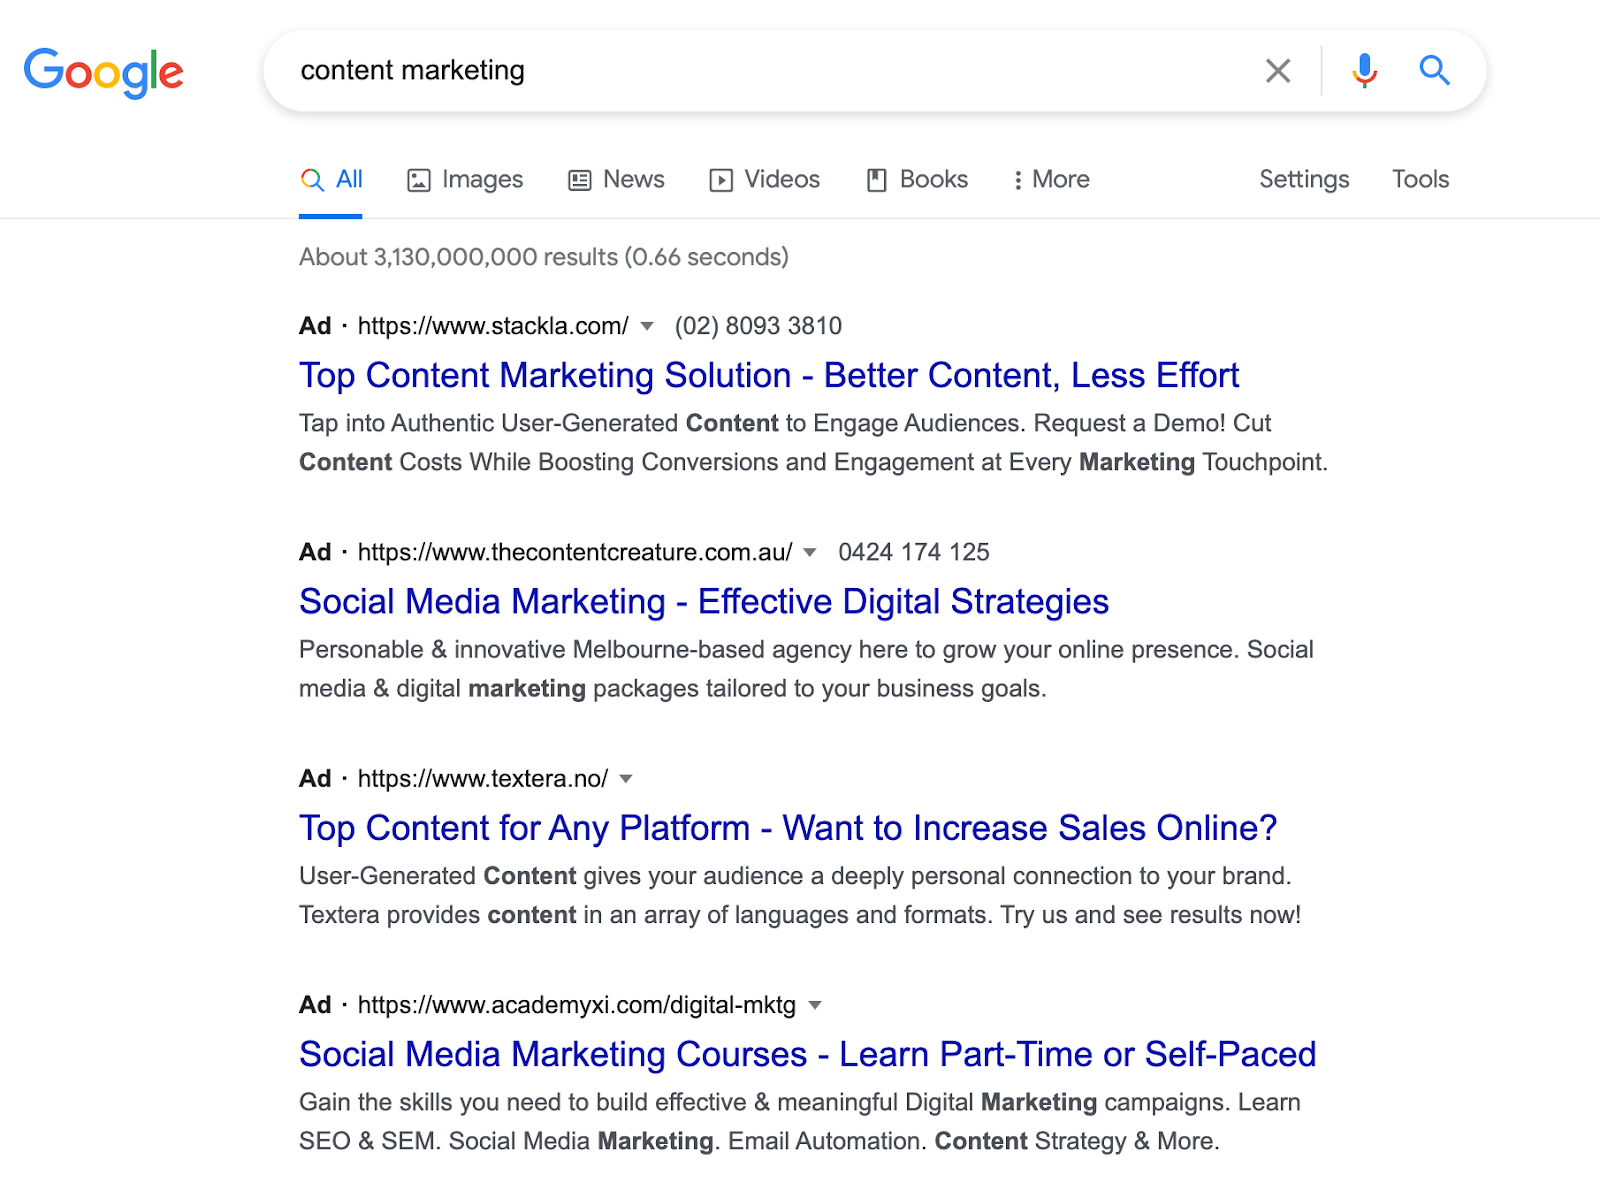 """SERP for """"content marketing"""" on Google Search"""